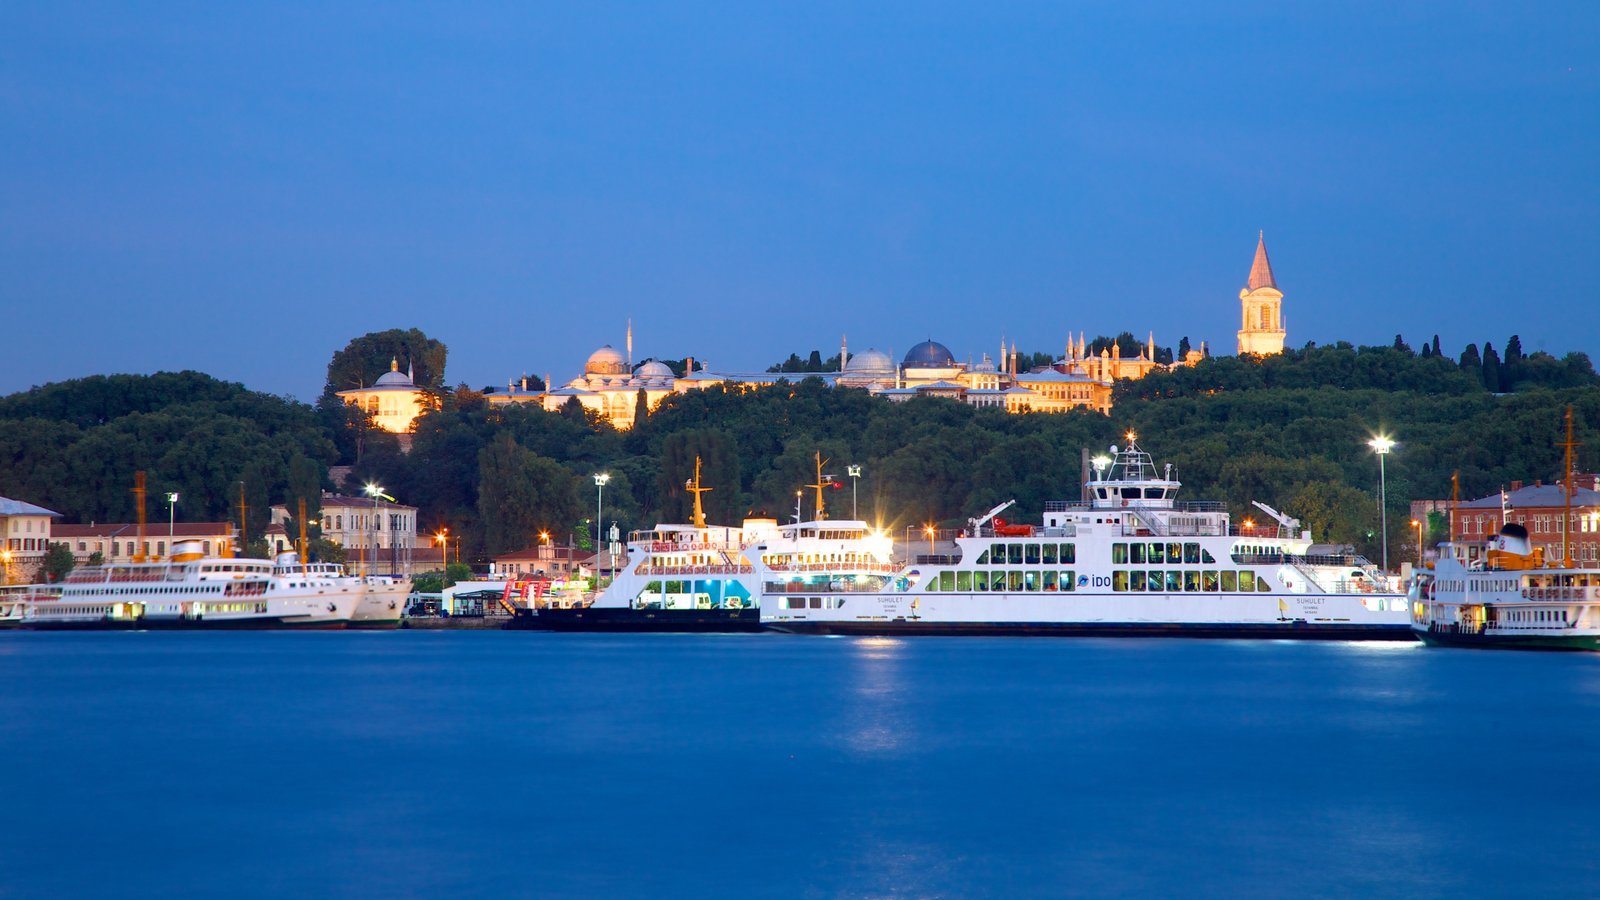 Galata Tower showing night scenes, a ferry and a bay or harbor